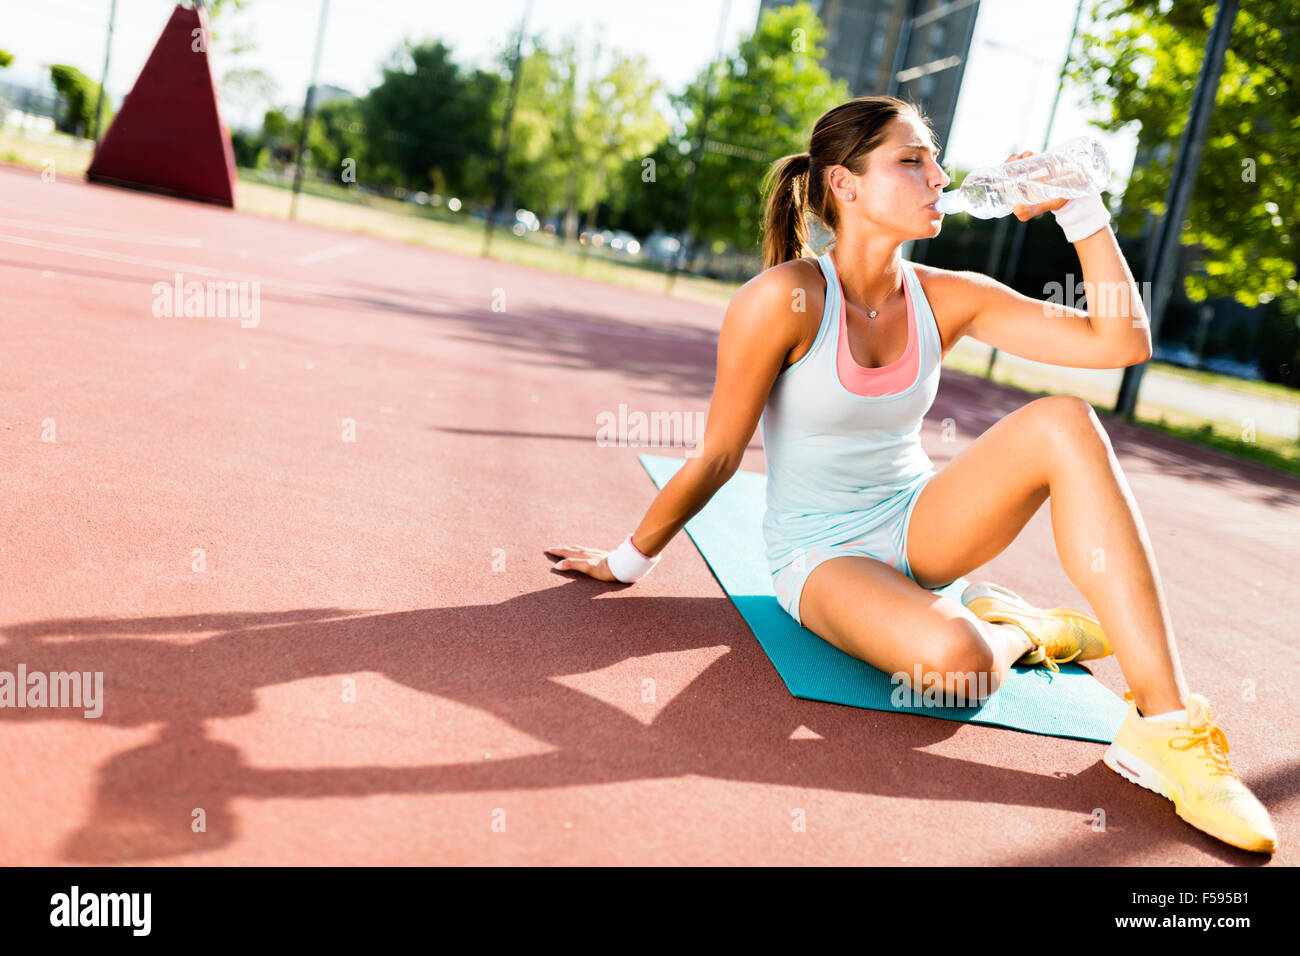 Young beautiful woman drinking water after exercise in a city training court on a sunny day Stock Photo